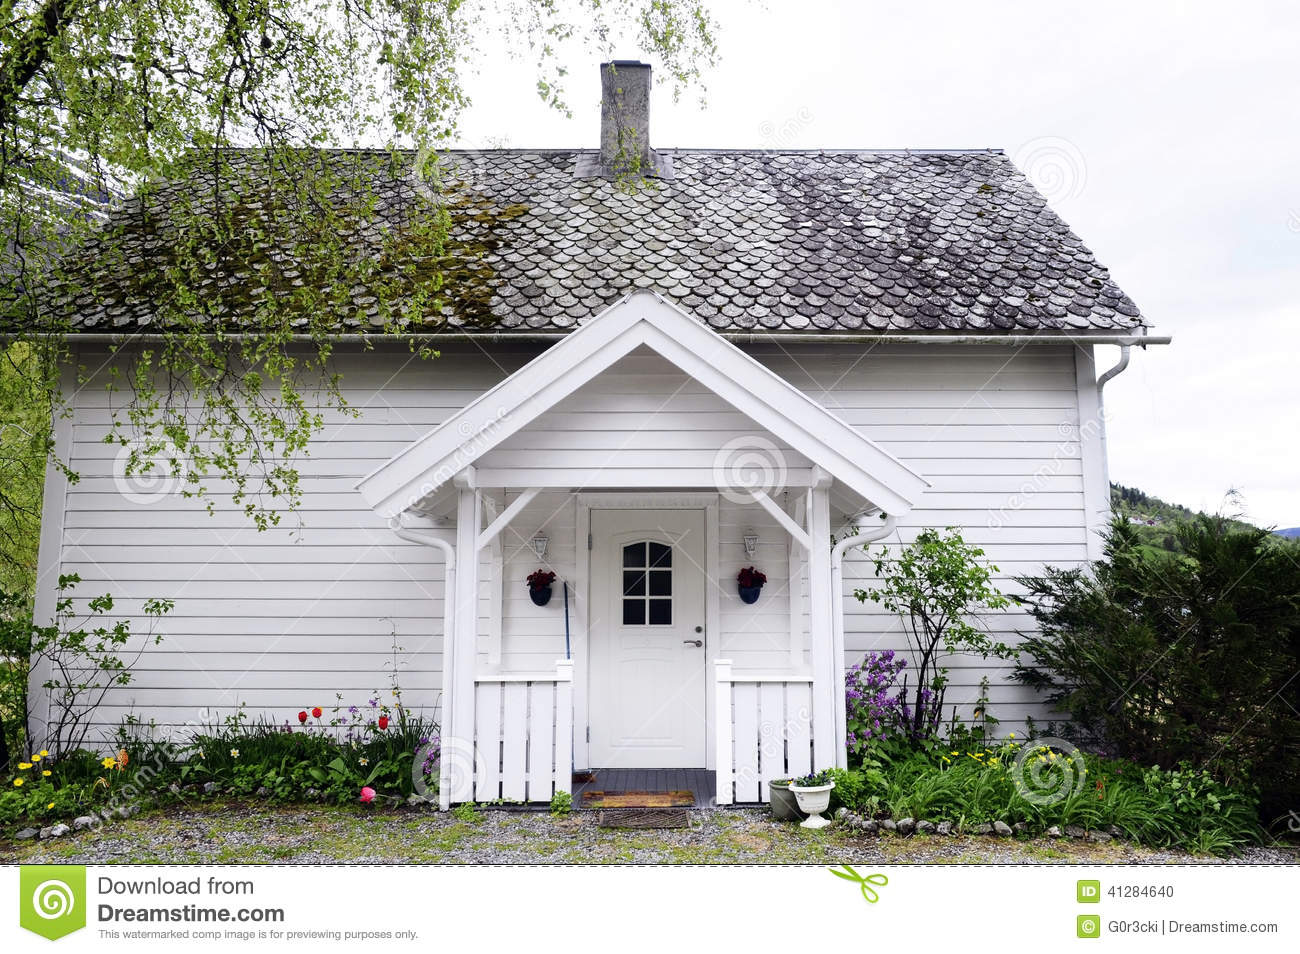 White Wood House : Small Wooden White House With Front Porch - Nordic Stock Photo - Image ...